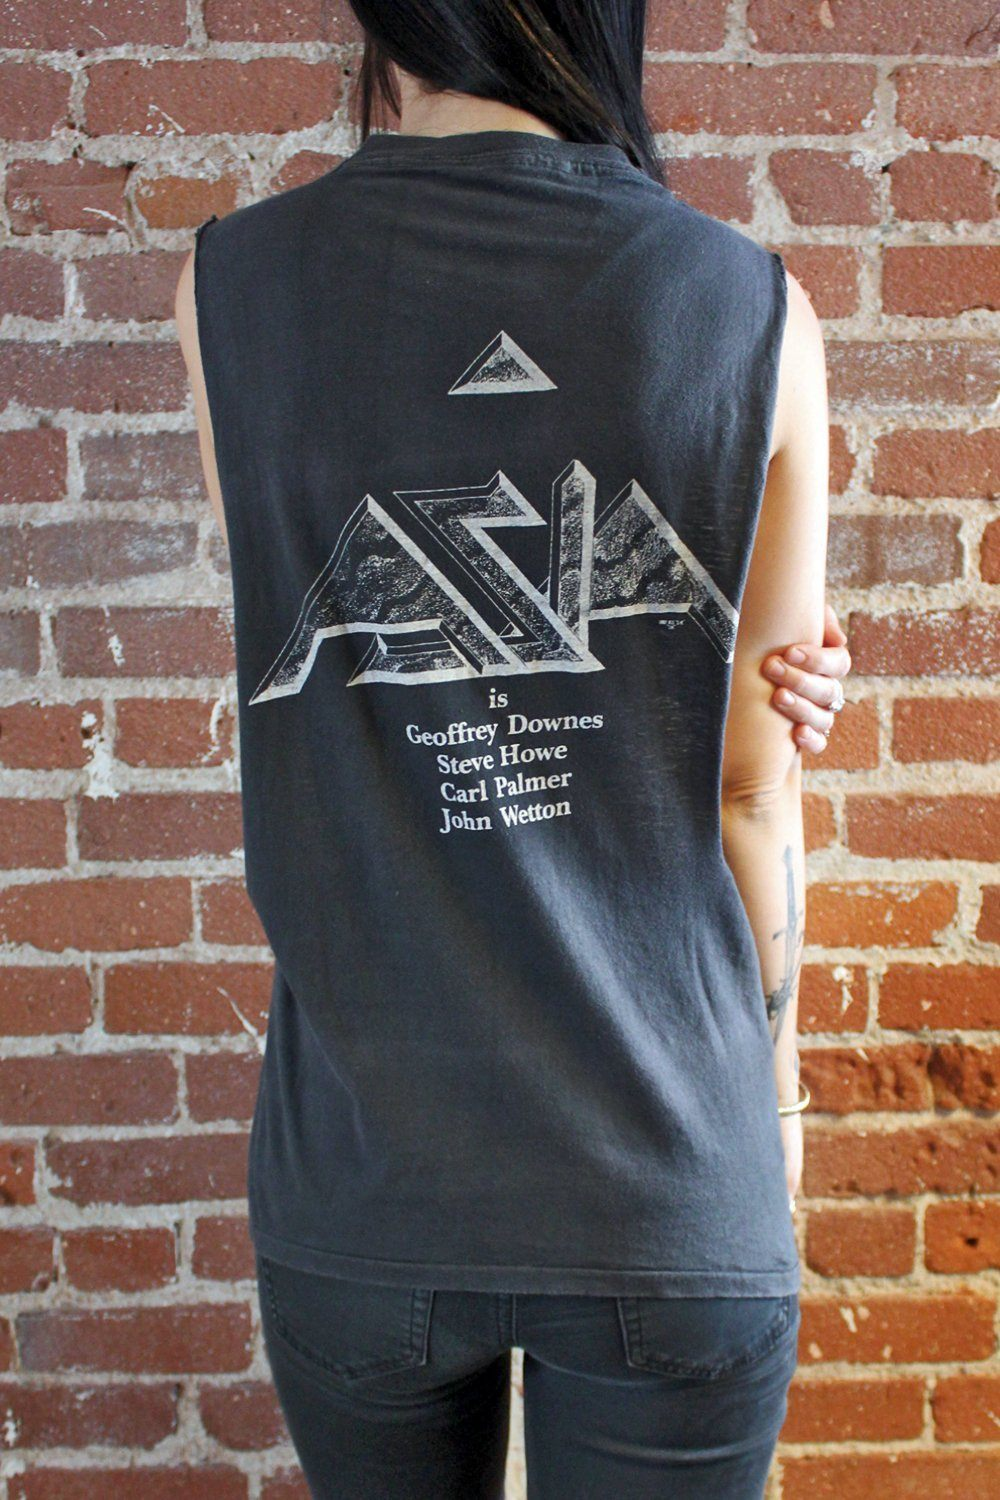 1982 ASIA Super Soft, Thin, 'N Faded Sleeveless Tee